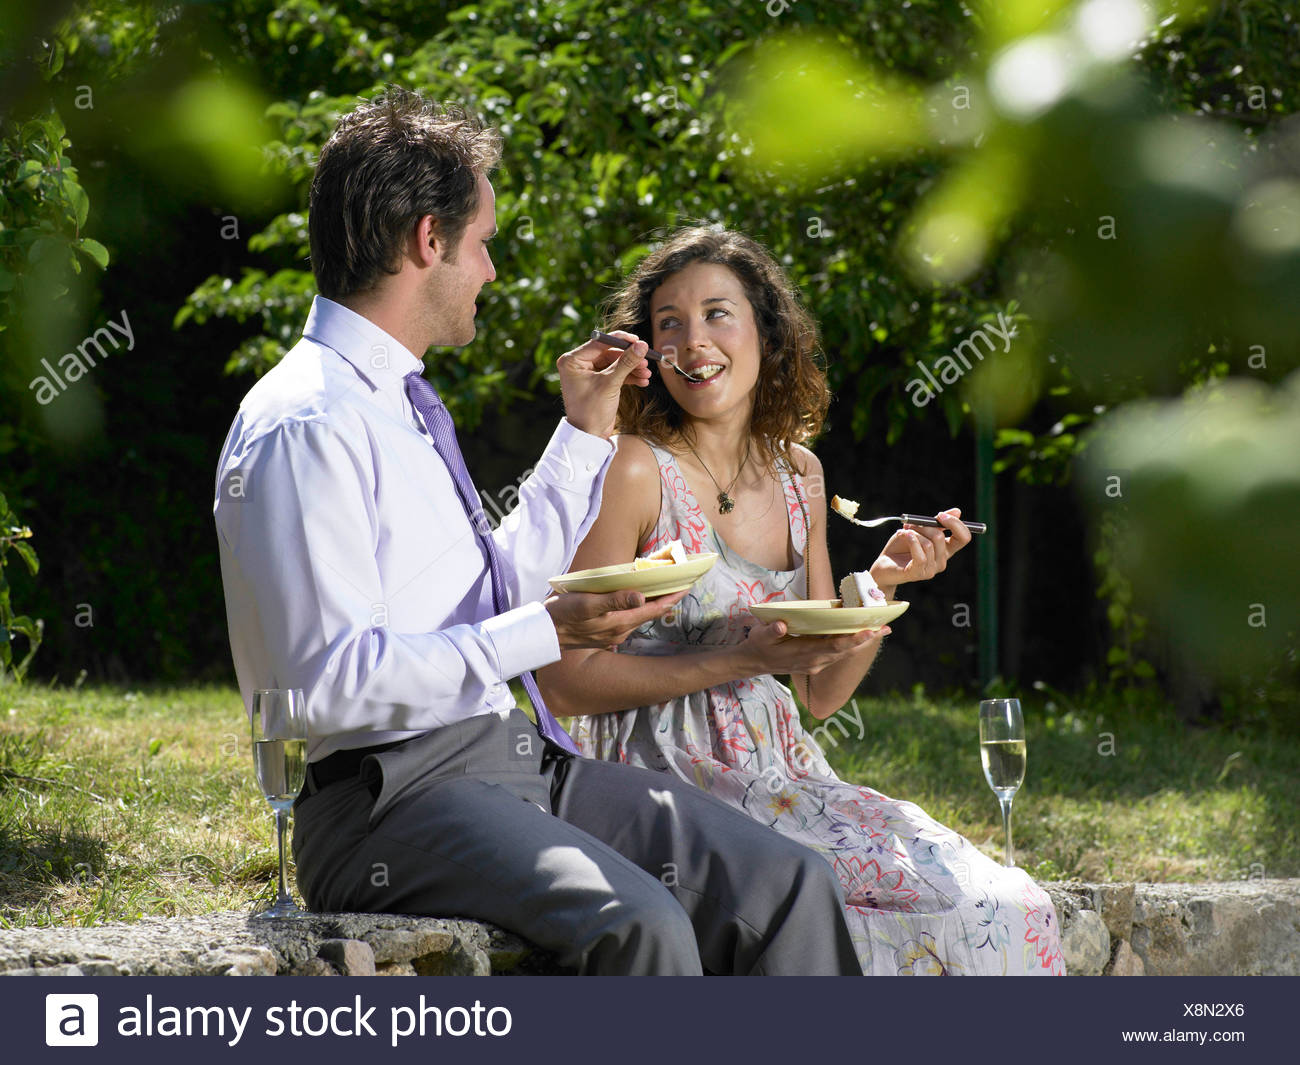 Wedding guests feeding each other cake - Stock Image